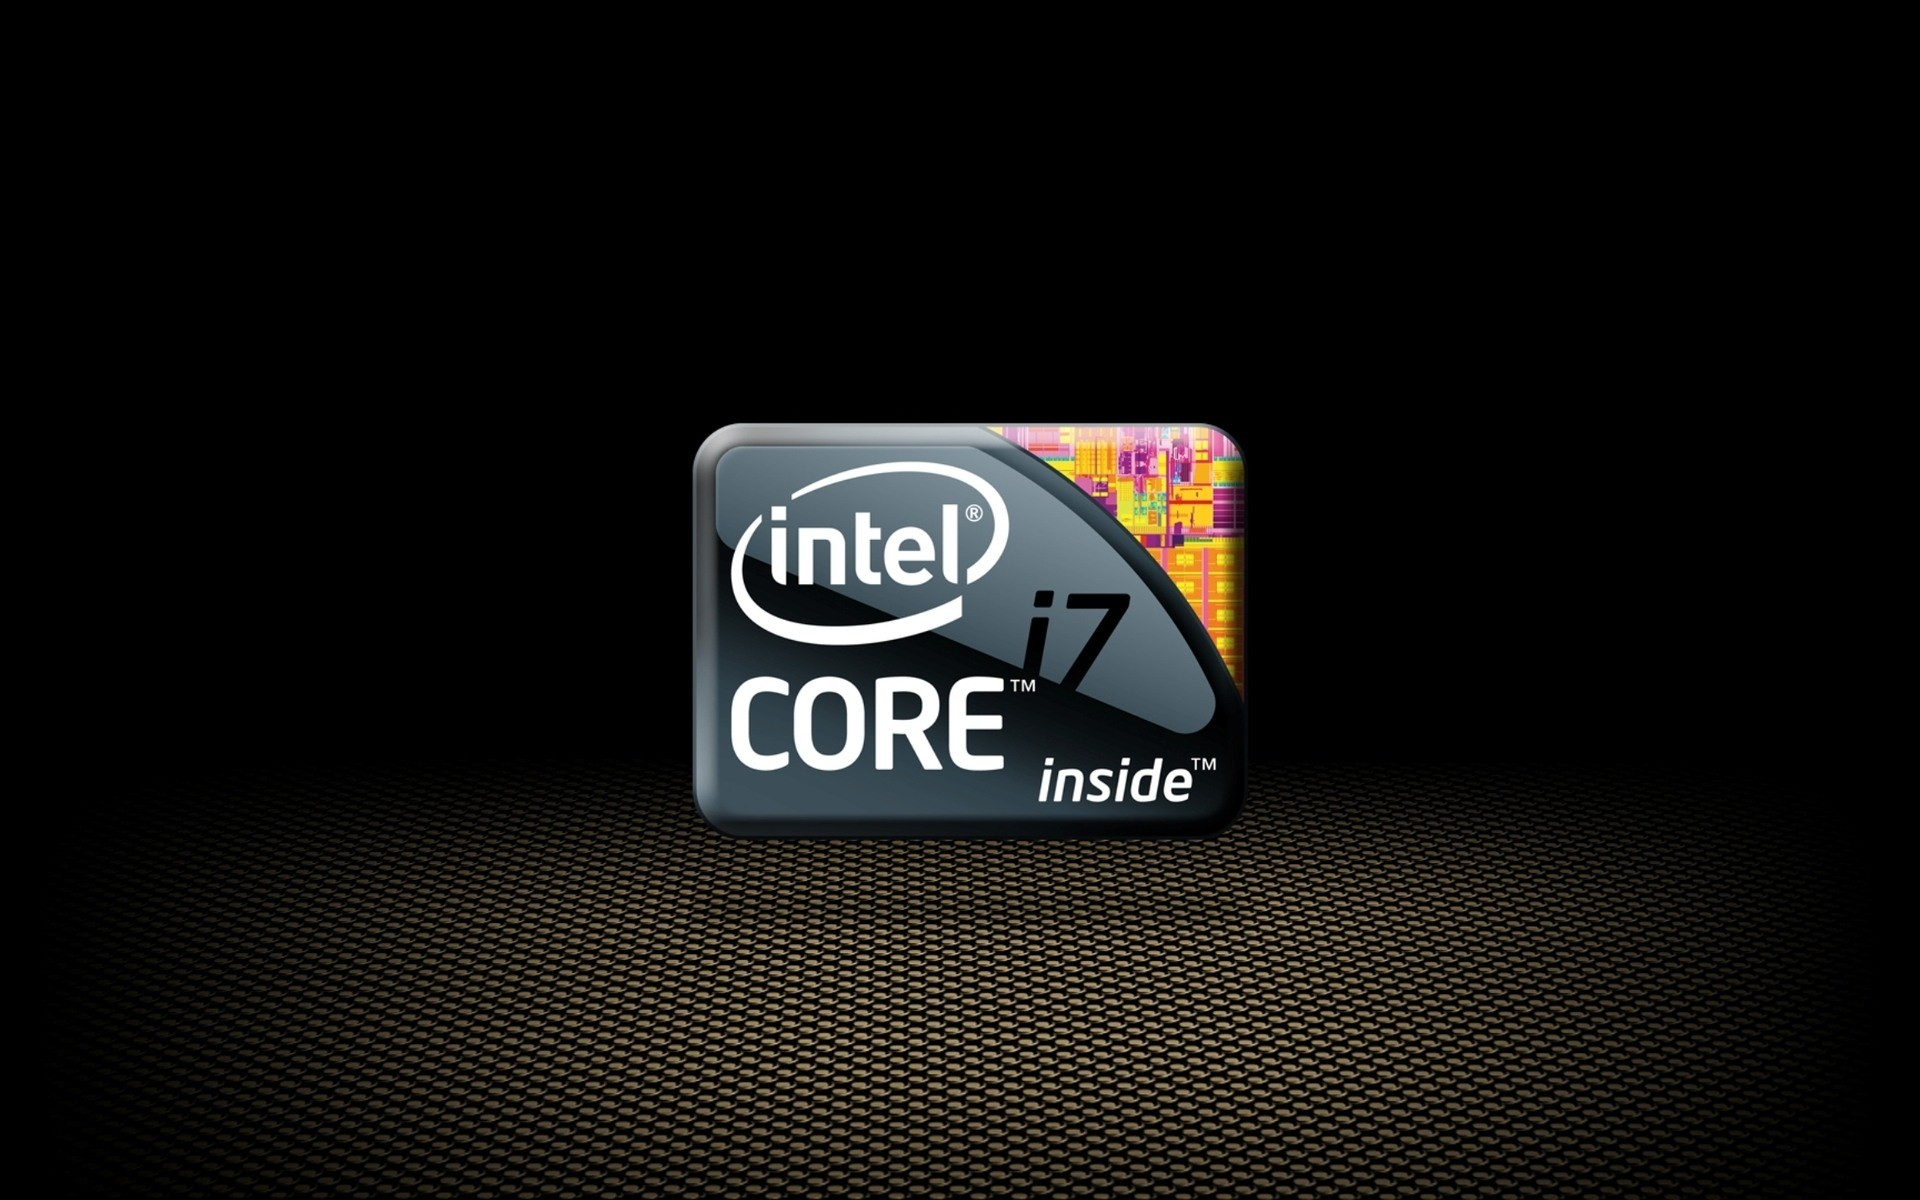 Intel Core i7 Extreme Edition   Mystery Wallpaper 1920x1200